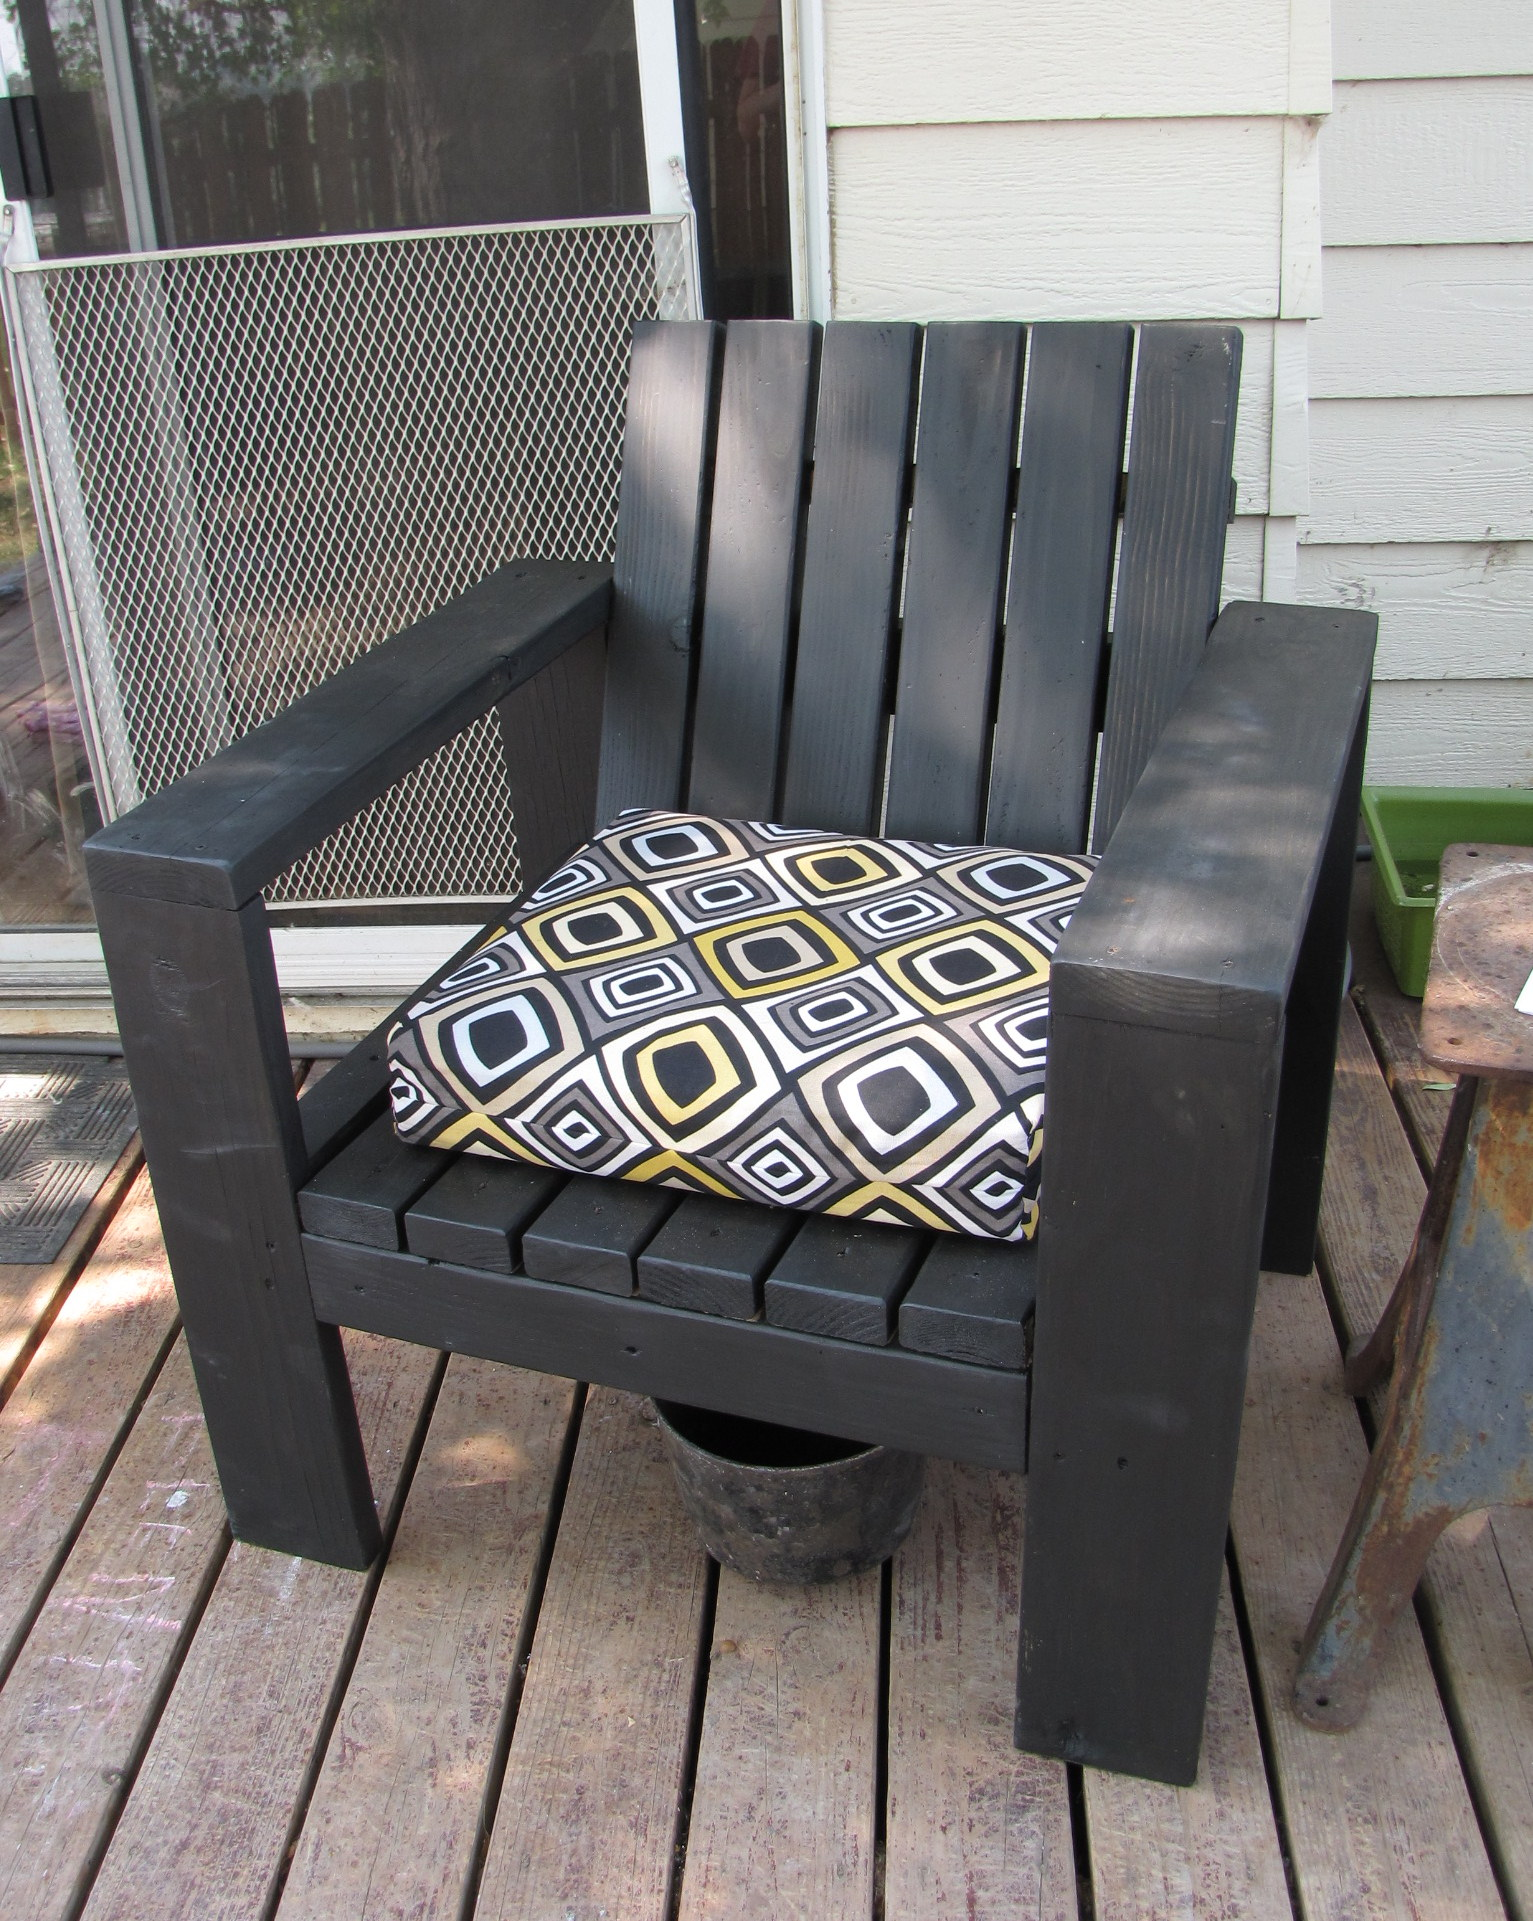 Simple Outdoor Number Activities For Kids: Simple Outdoor Lounge Chair - Beefed Up - DIY